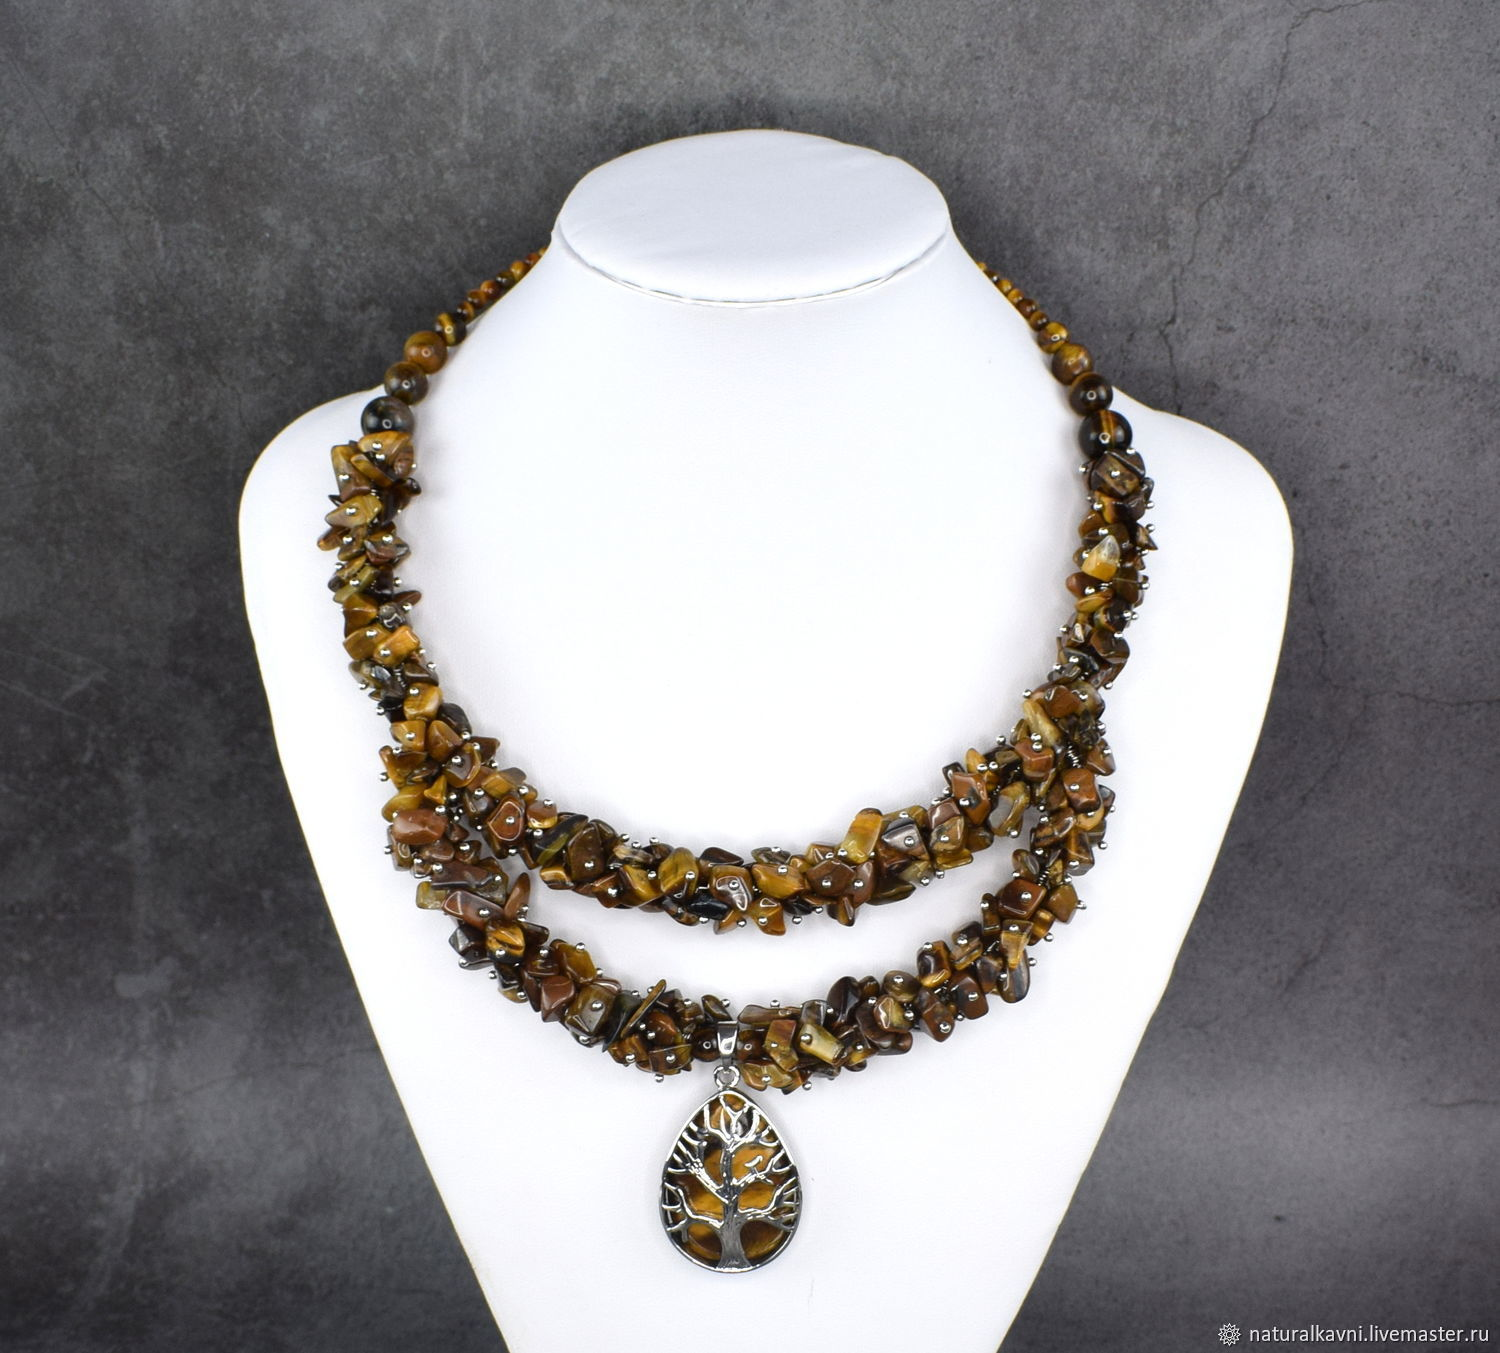 Necklace author's work made of natural stone tiger's eye, Necklace, Moscow,  Фото №1